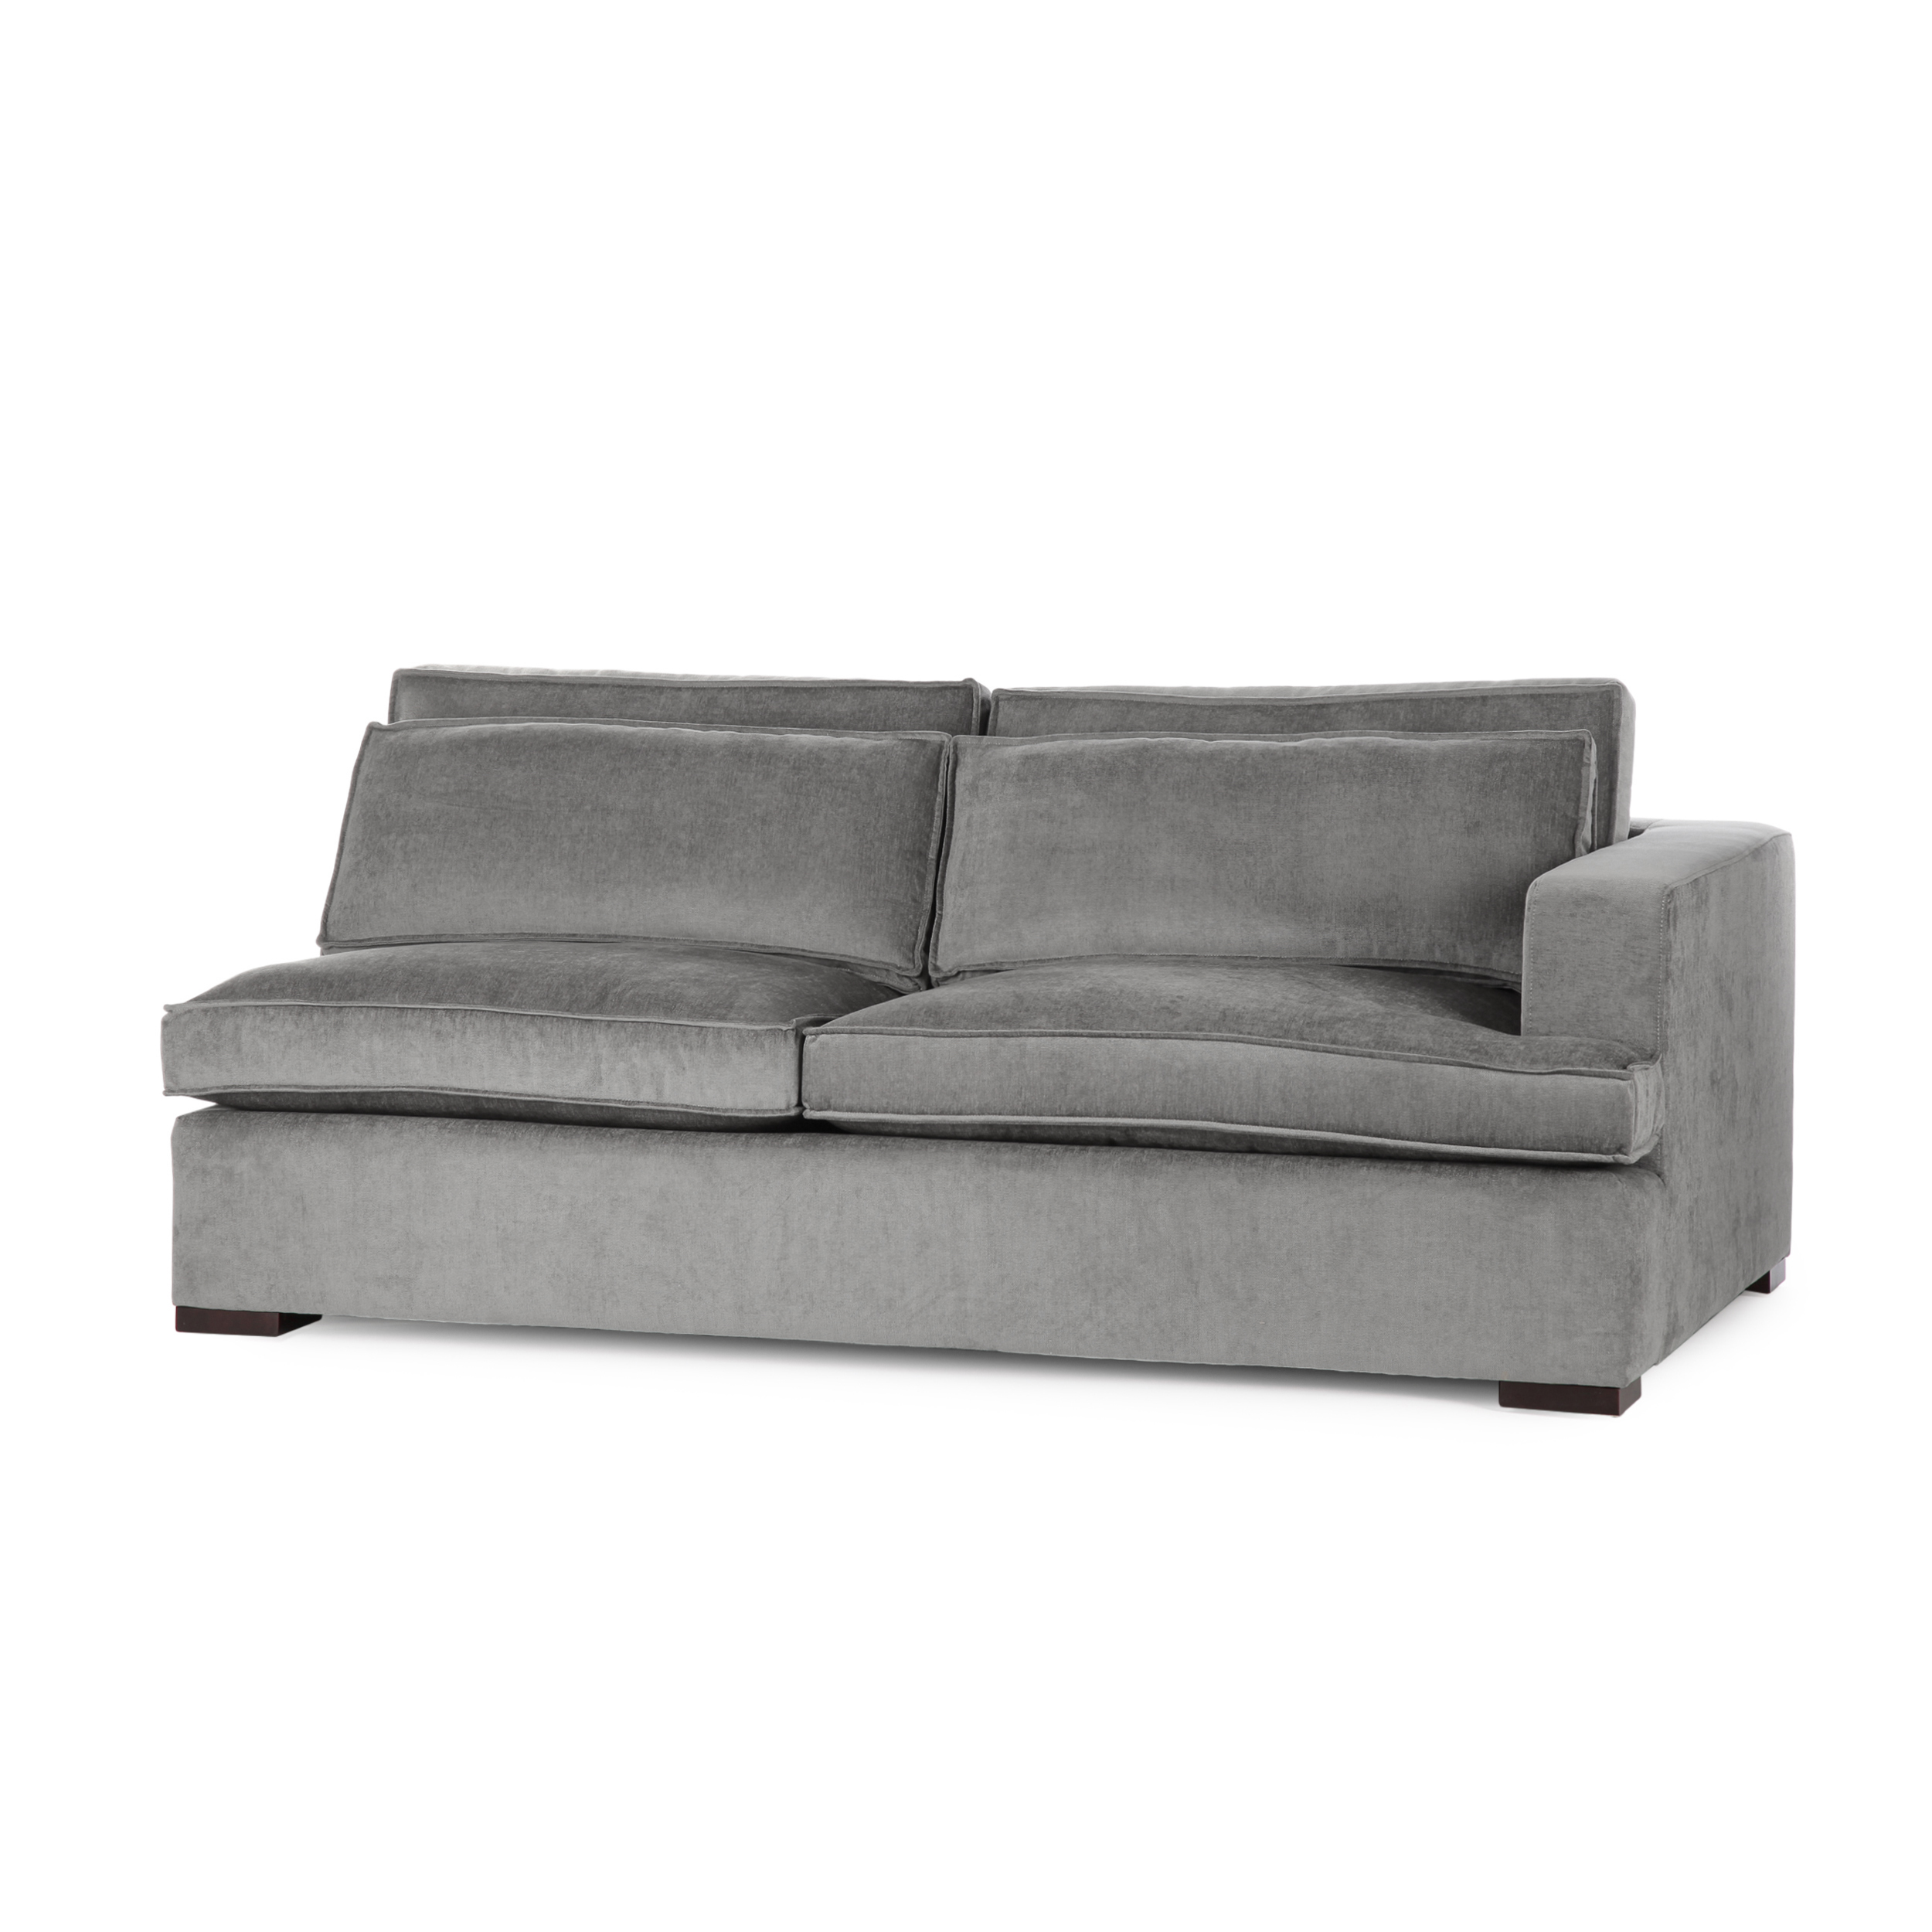 Элемент дивана правый SO086-2-20-RF Deep size King Loveseat RF Arm